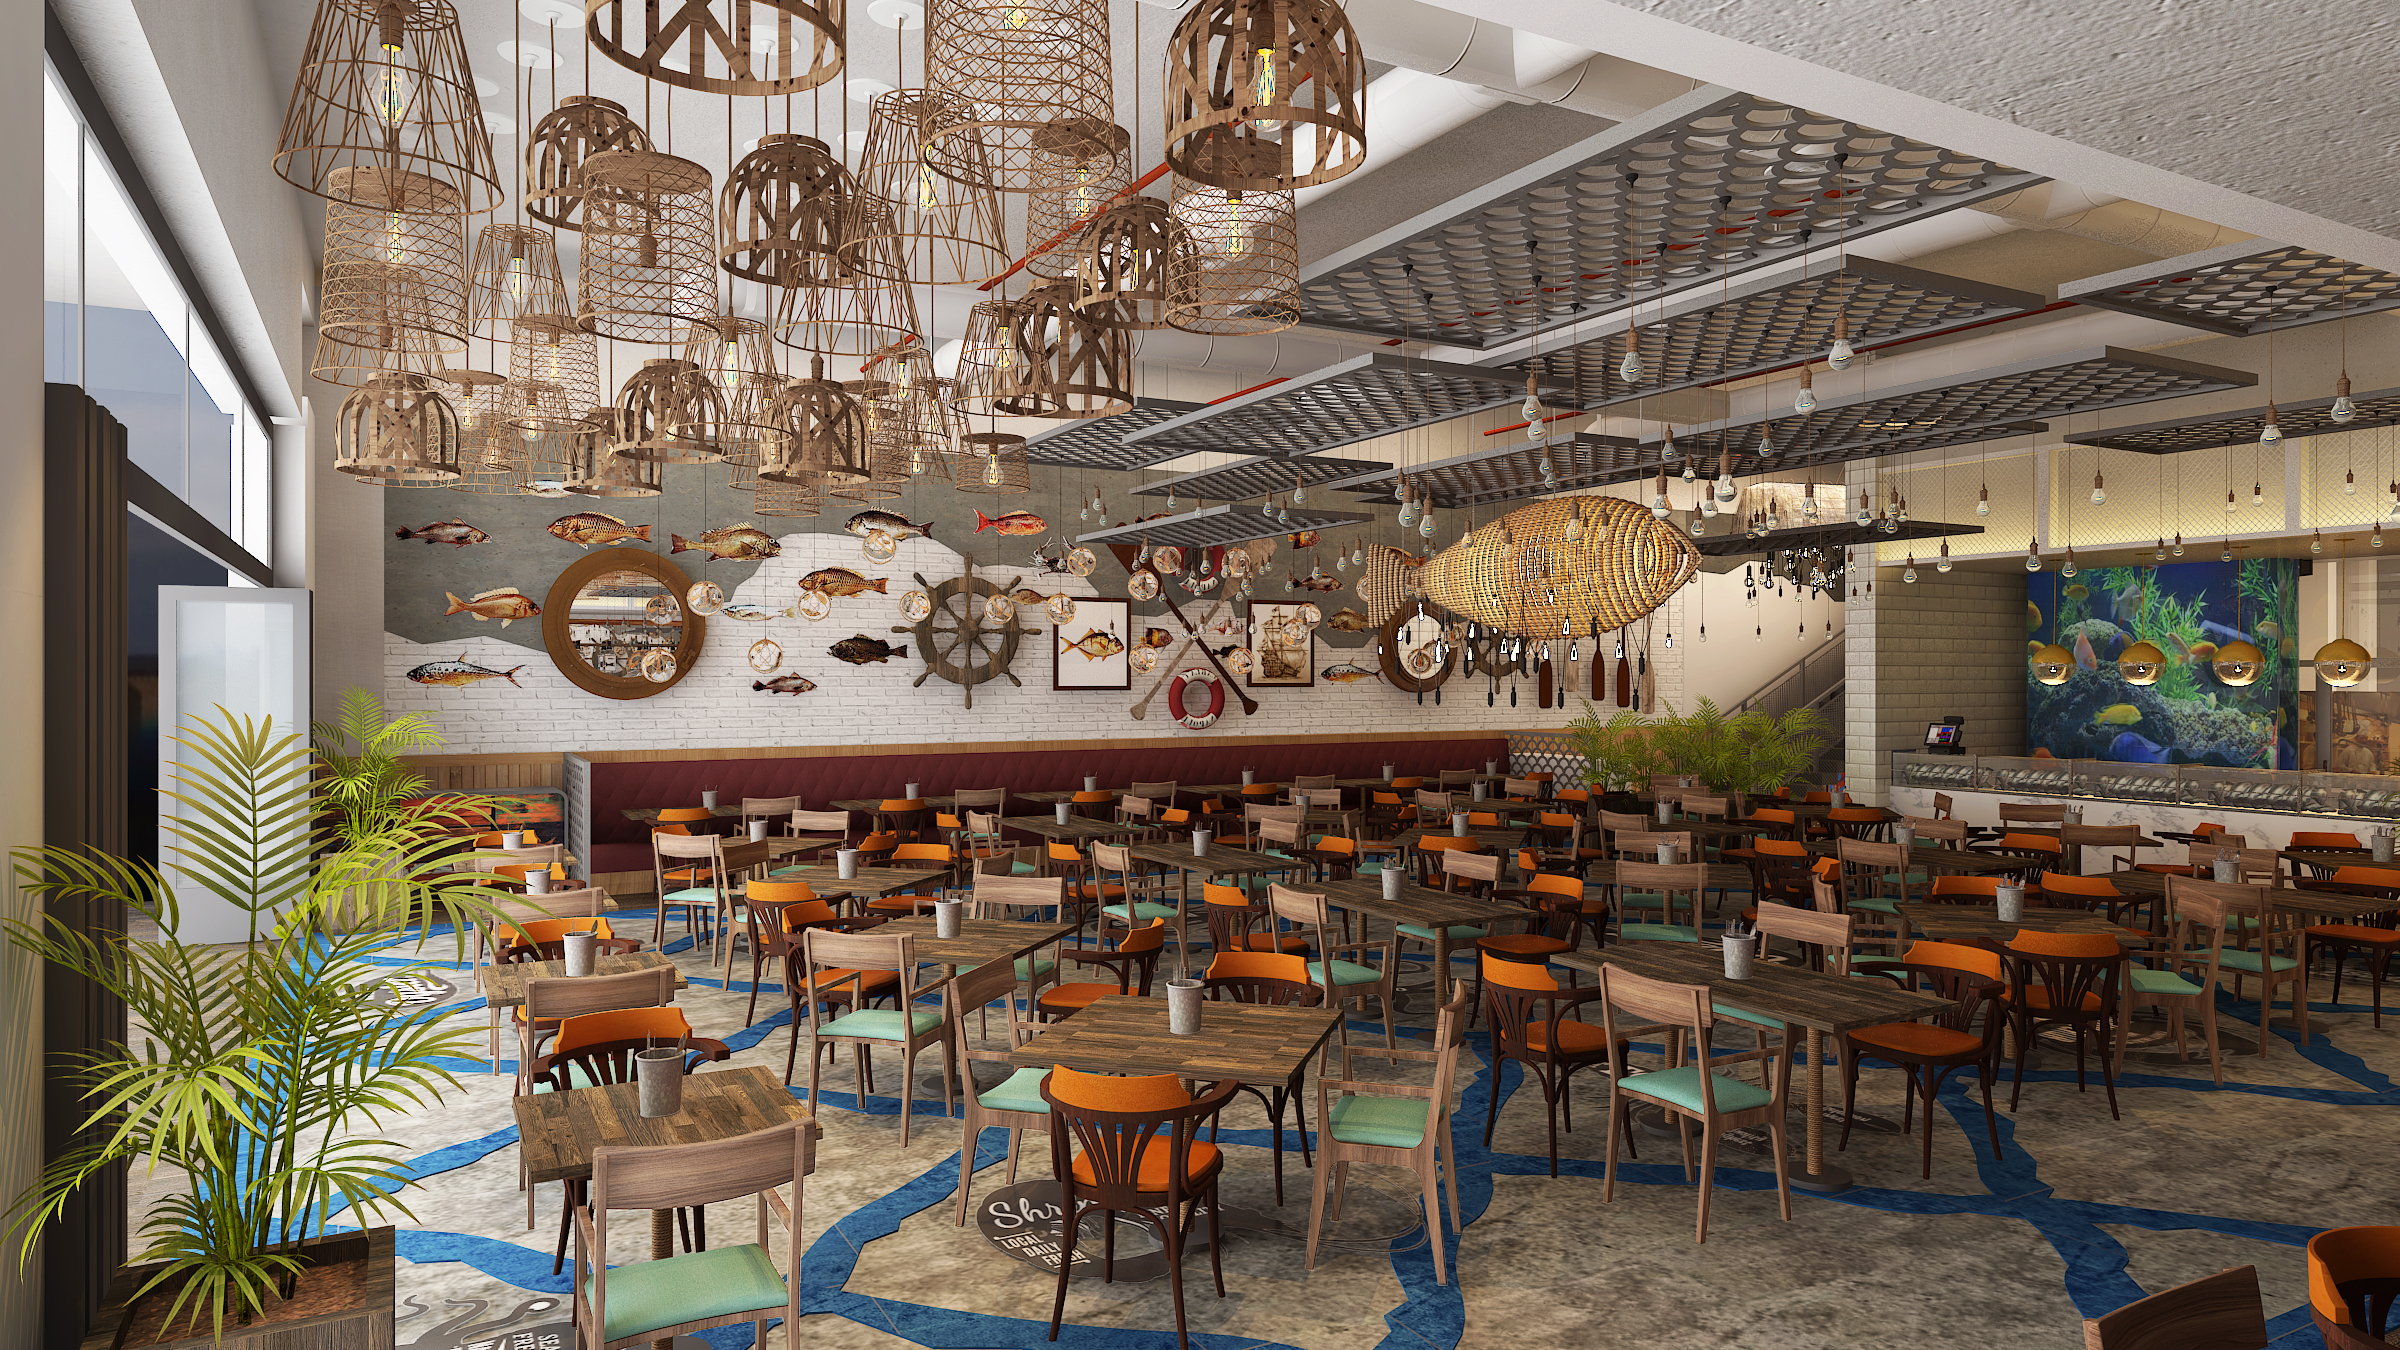 Seafood Kitchen now open at The Pointe - Future of retail ...